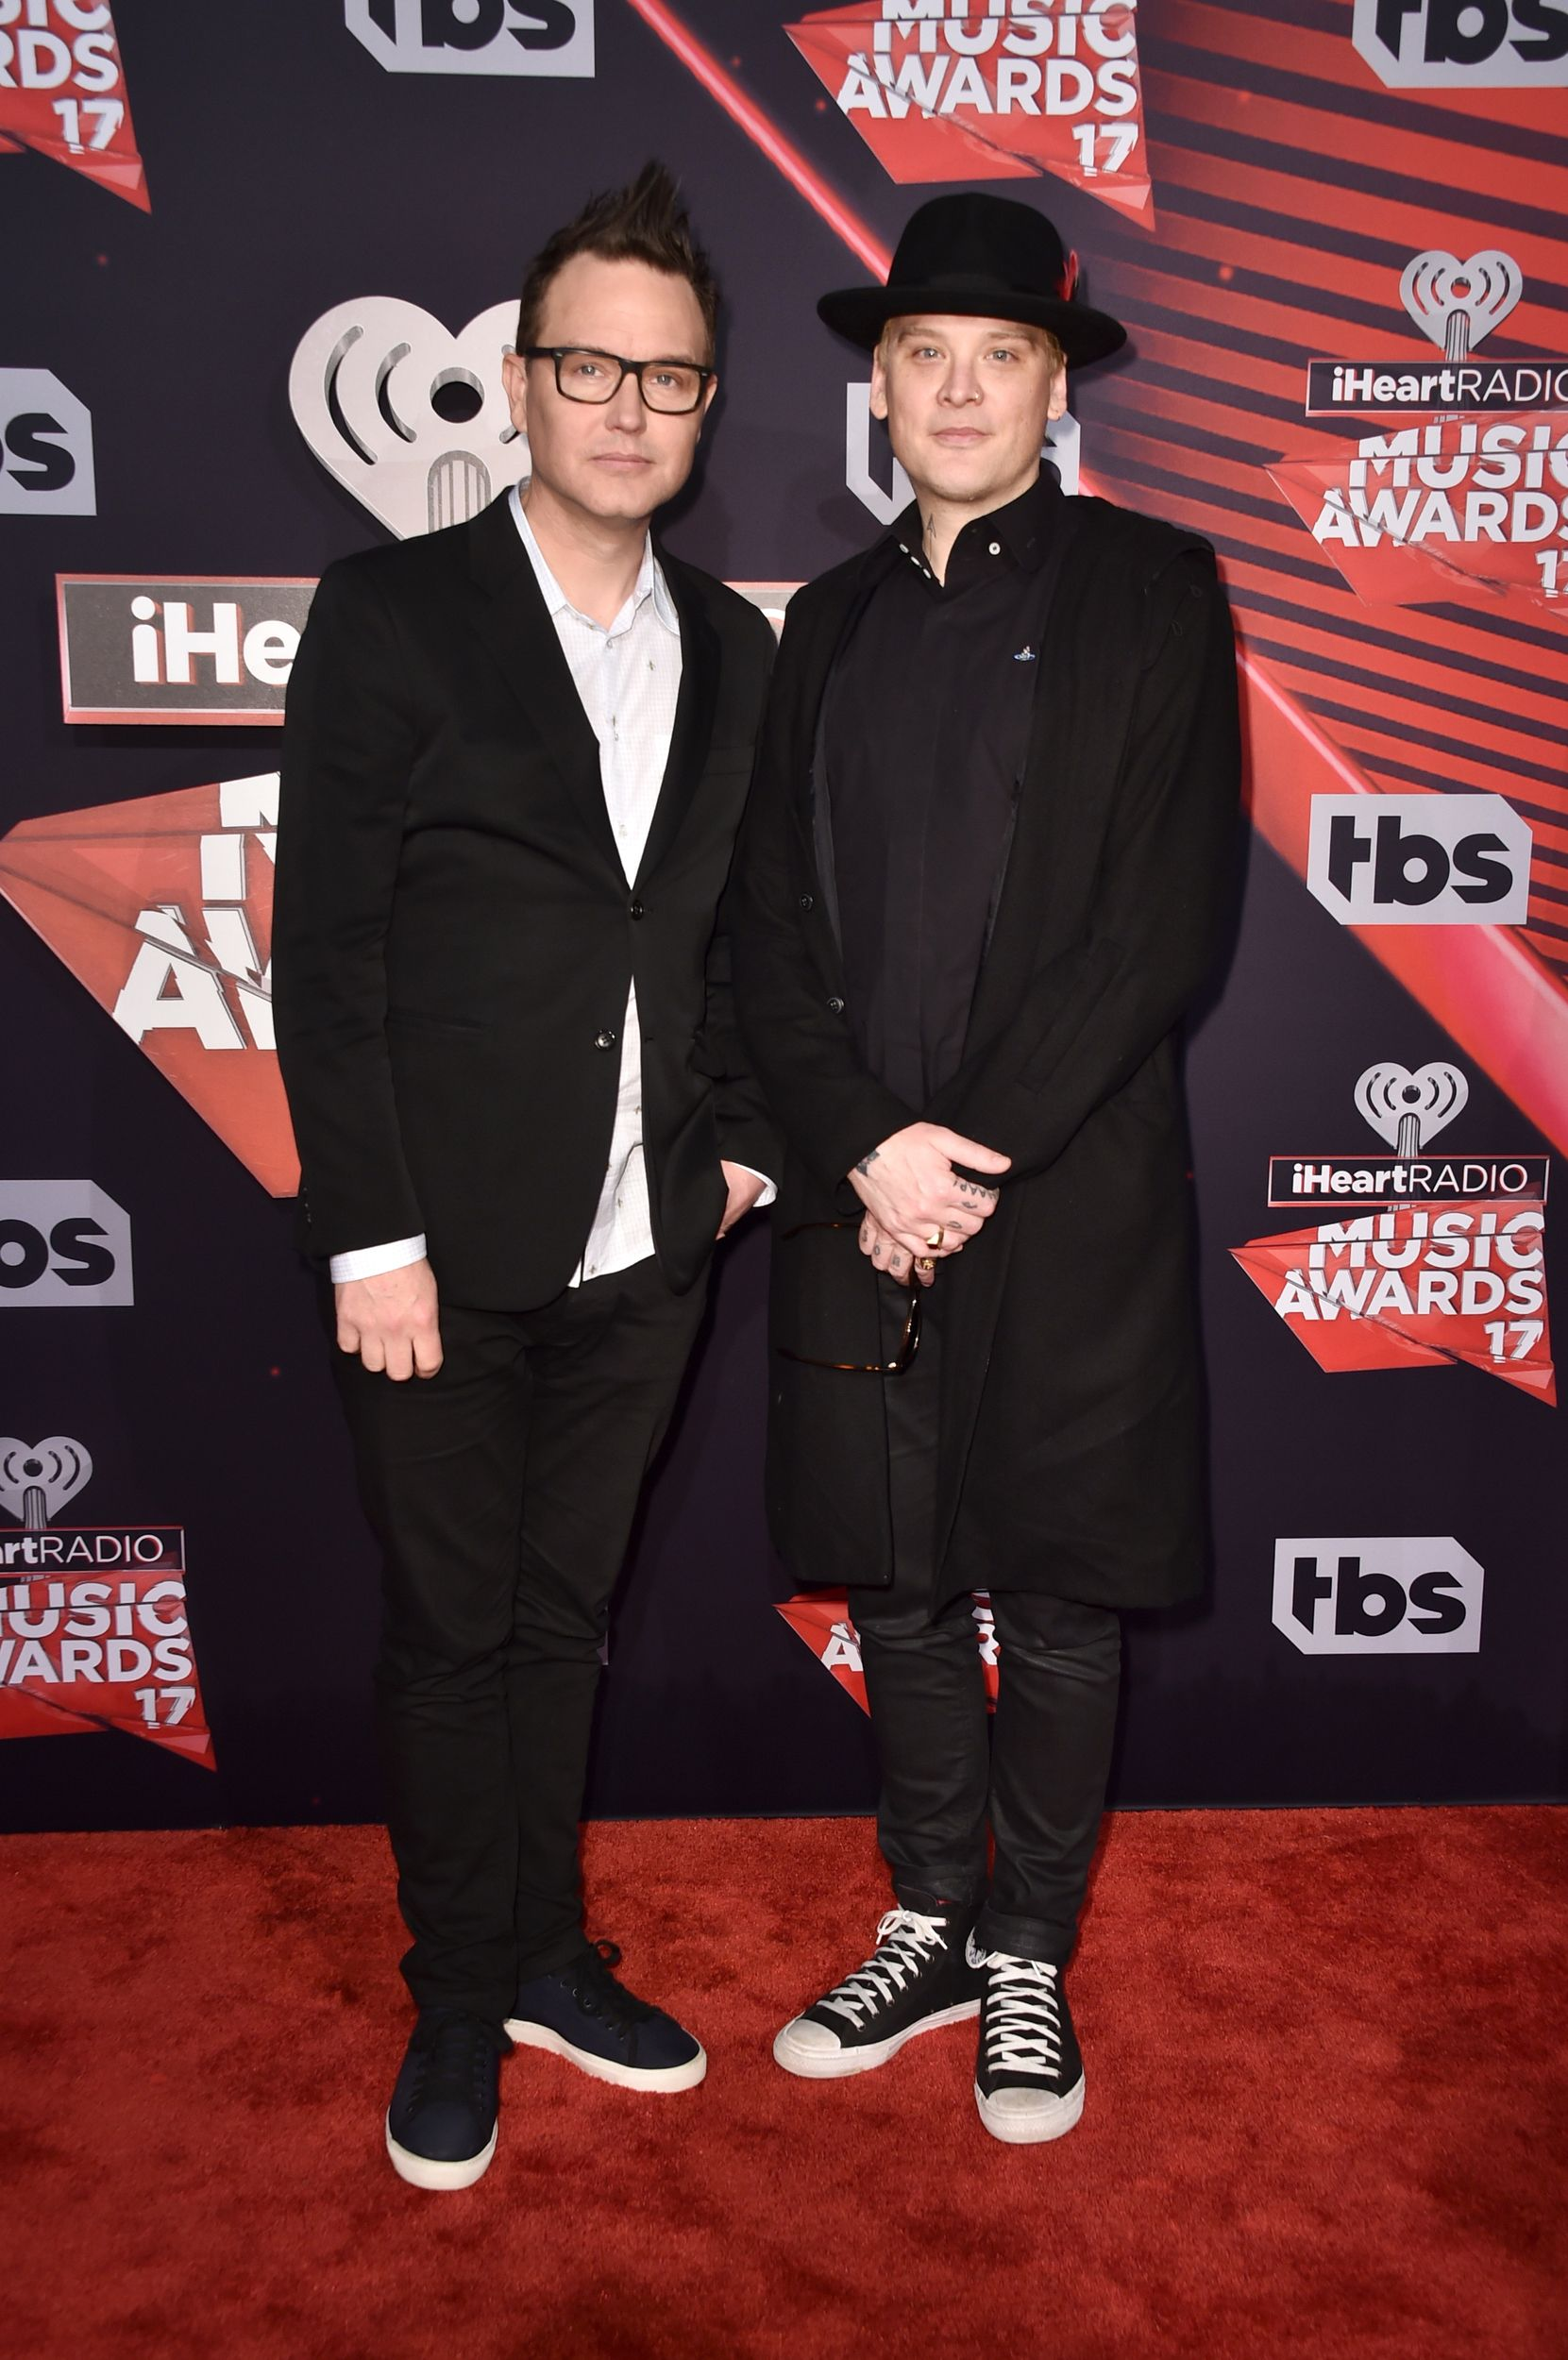 Stars Turn Heads At The Iheartradio Music Awards 2017 See The Red Carpet Pics Blink 182 Blink 182 Albums Blink 182 Cover